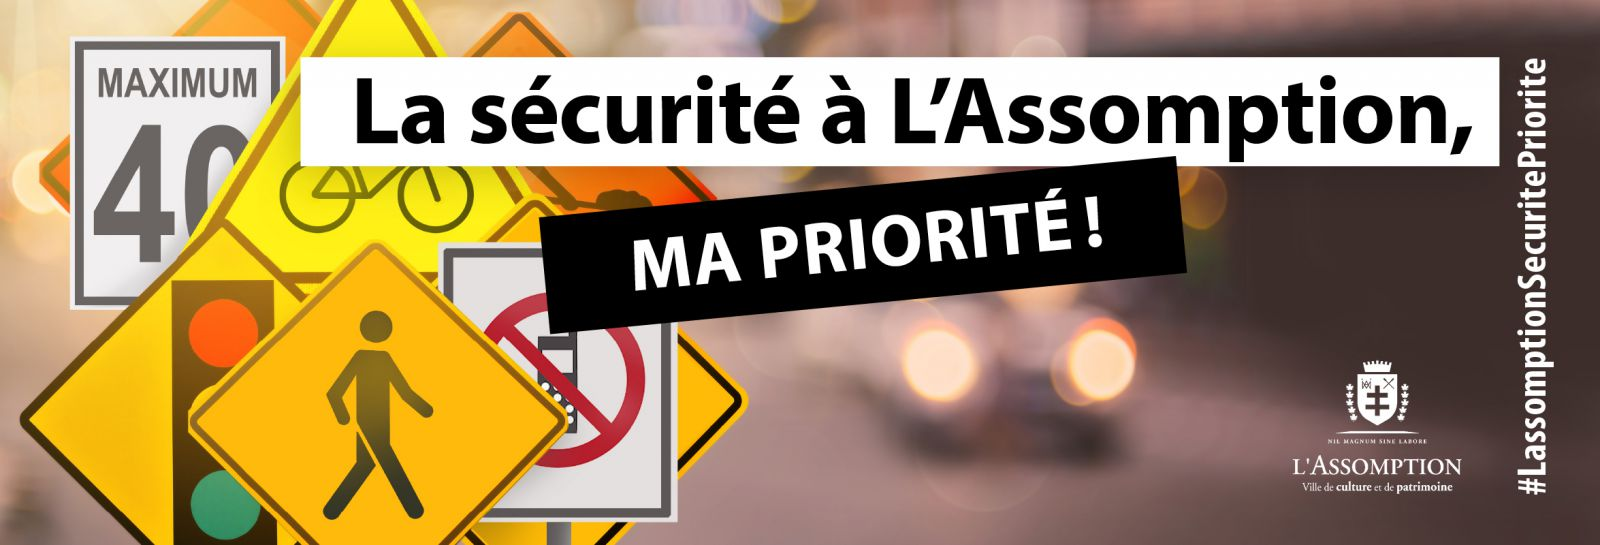 campagne securite routiere